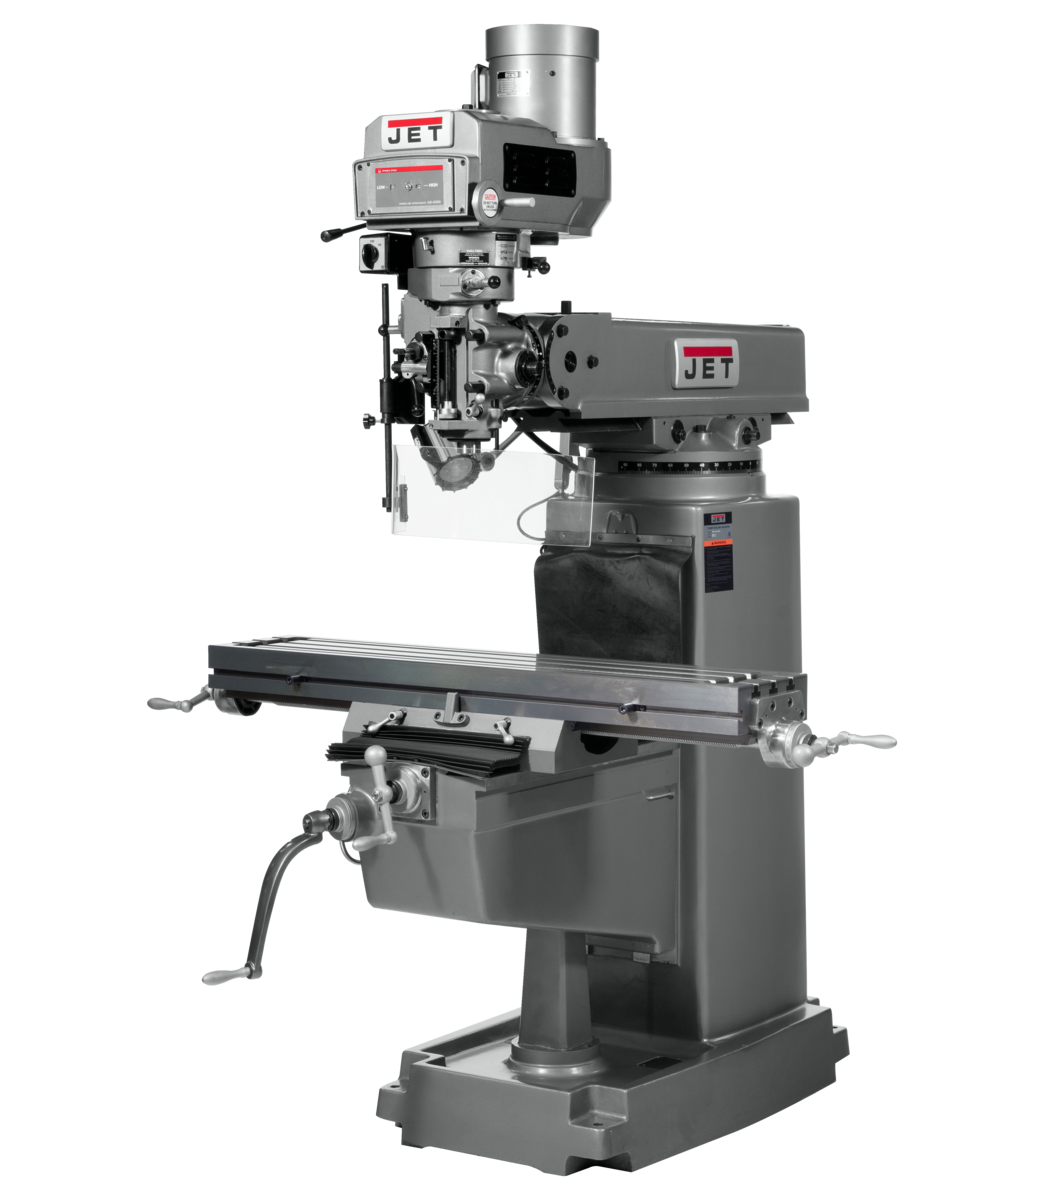 "JTM-1050VS2 Mill With ACU-RITE 203 DRO With X-Axis Powerfeed, Power Draw Bar and 8"" Riser Block"